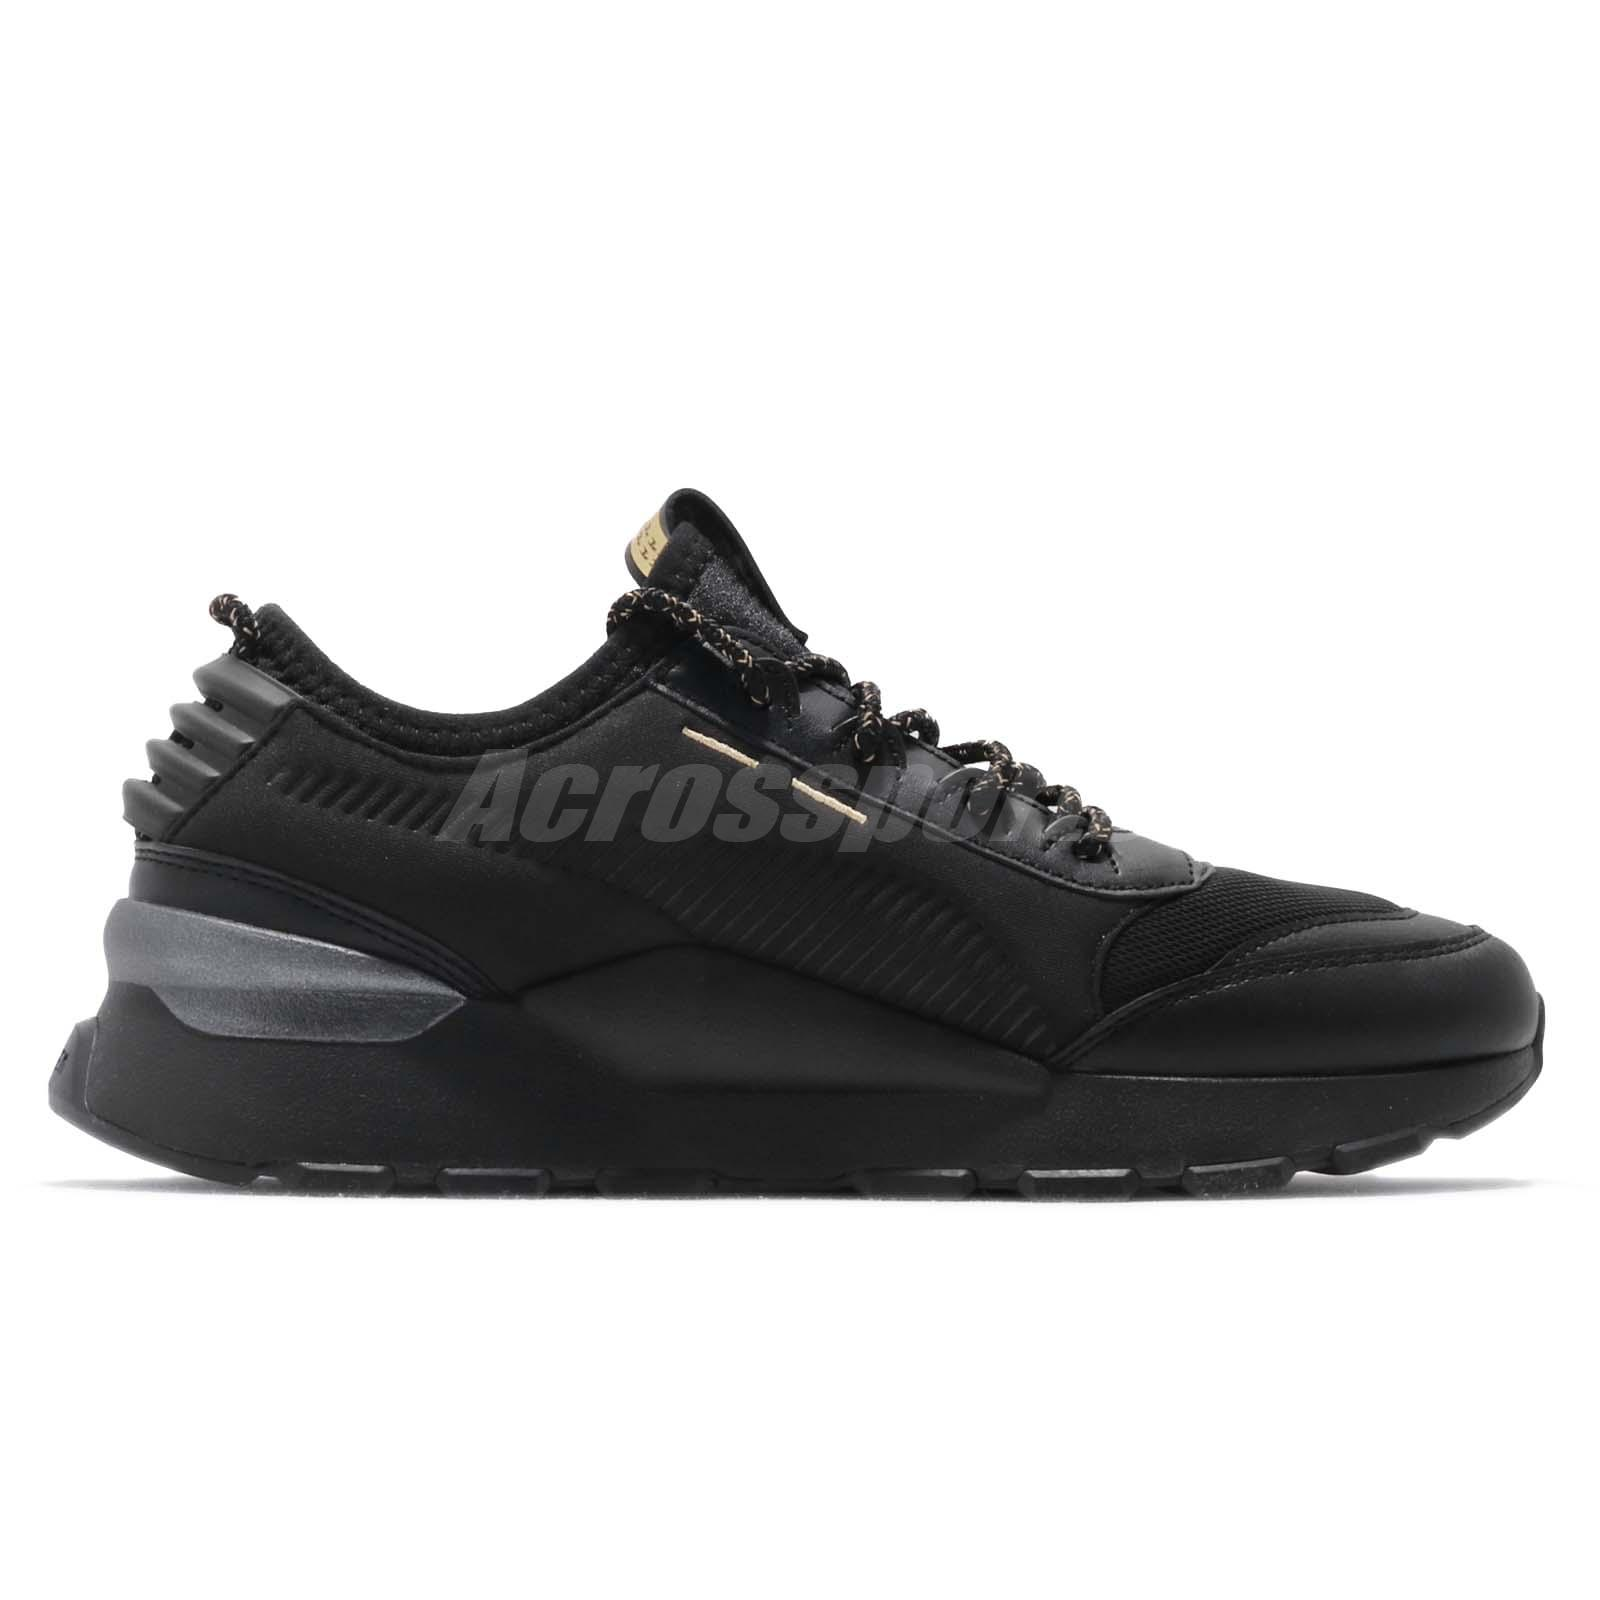 Puma RS-0 Trophy Running System Black Gold Men Lifestyle Shoes ... 99191fbb4